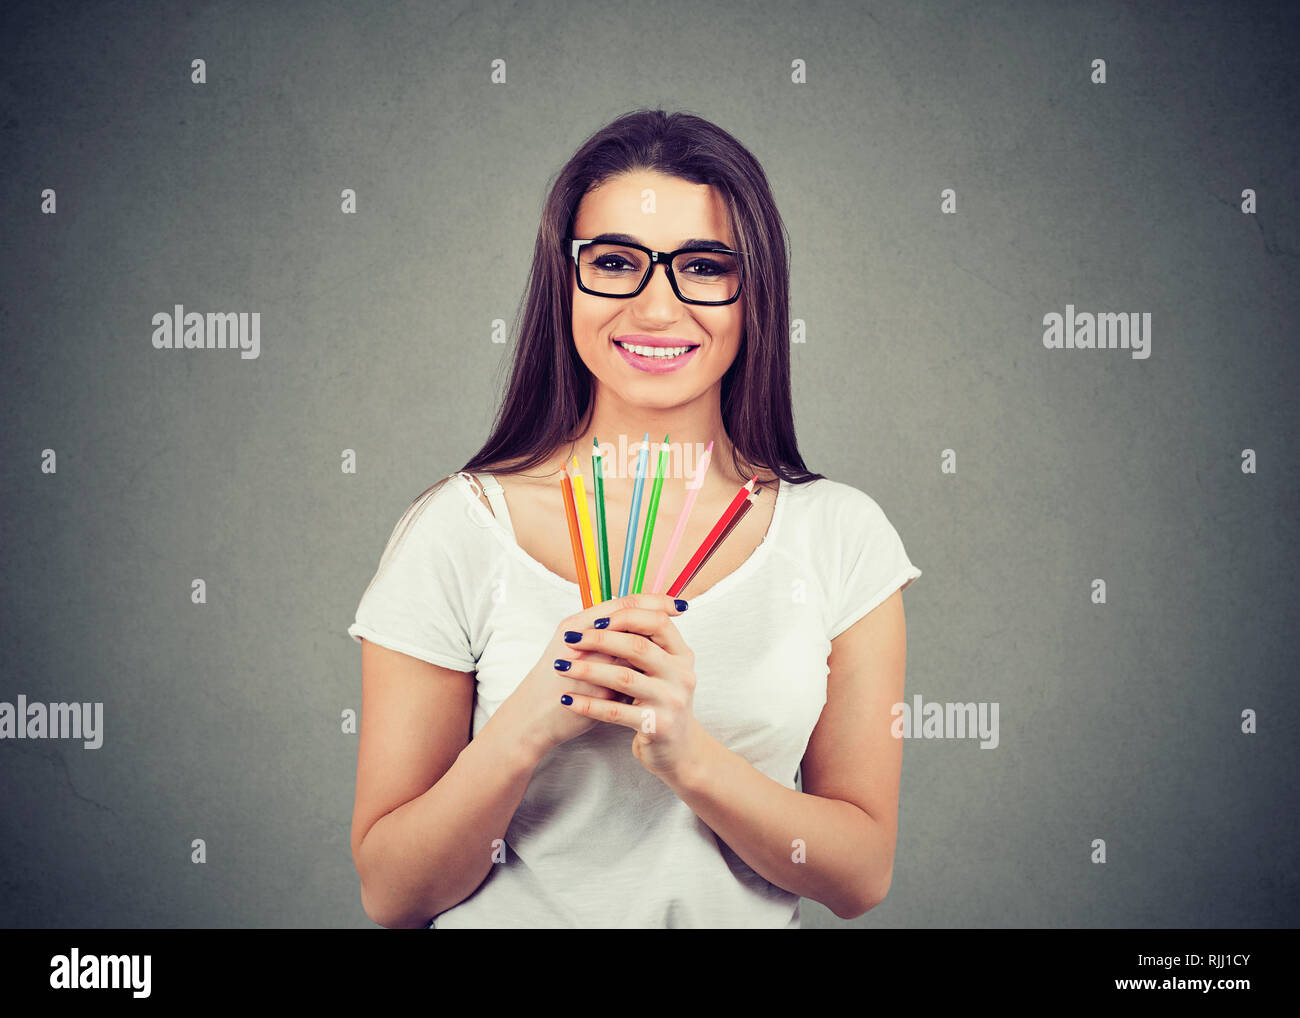 Cheerful excited young woman holding colorful crayon pencils isolated on gray wall background. Stock Photo